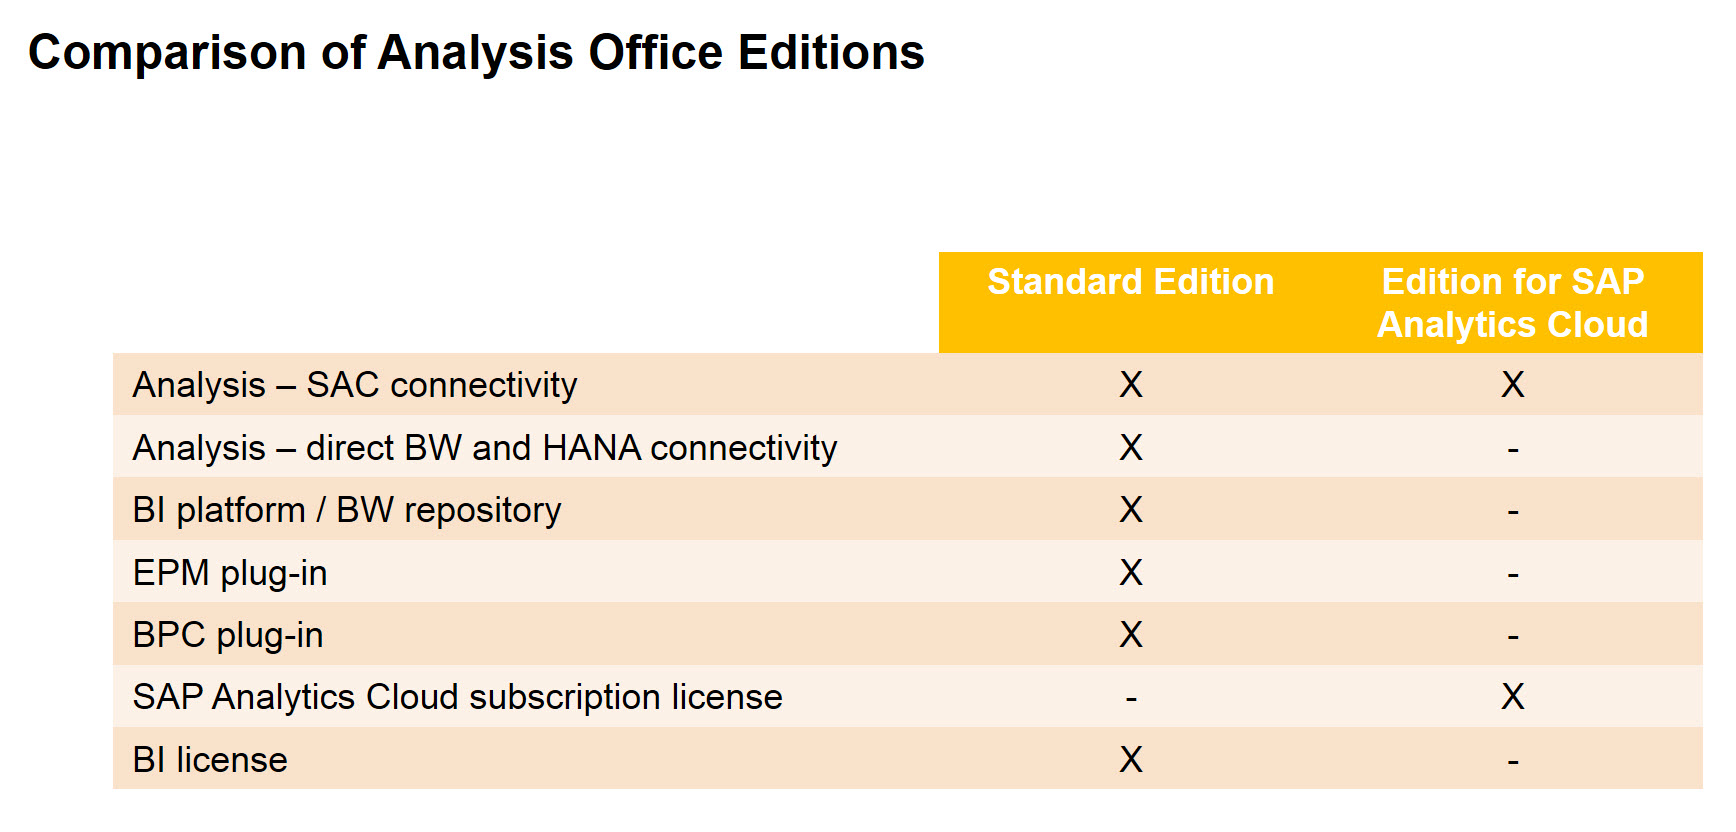 SAP Analysis for Microsoft Office Release 2 7 and Road Map